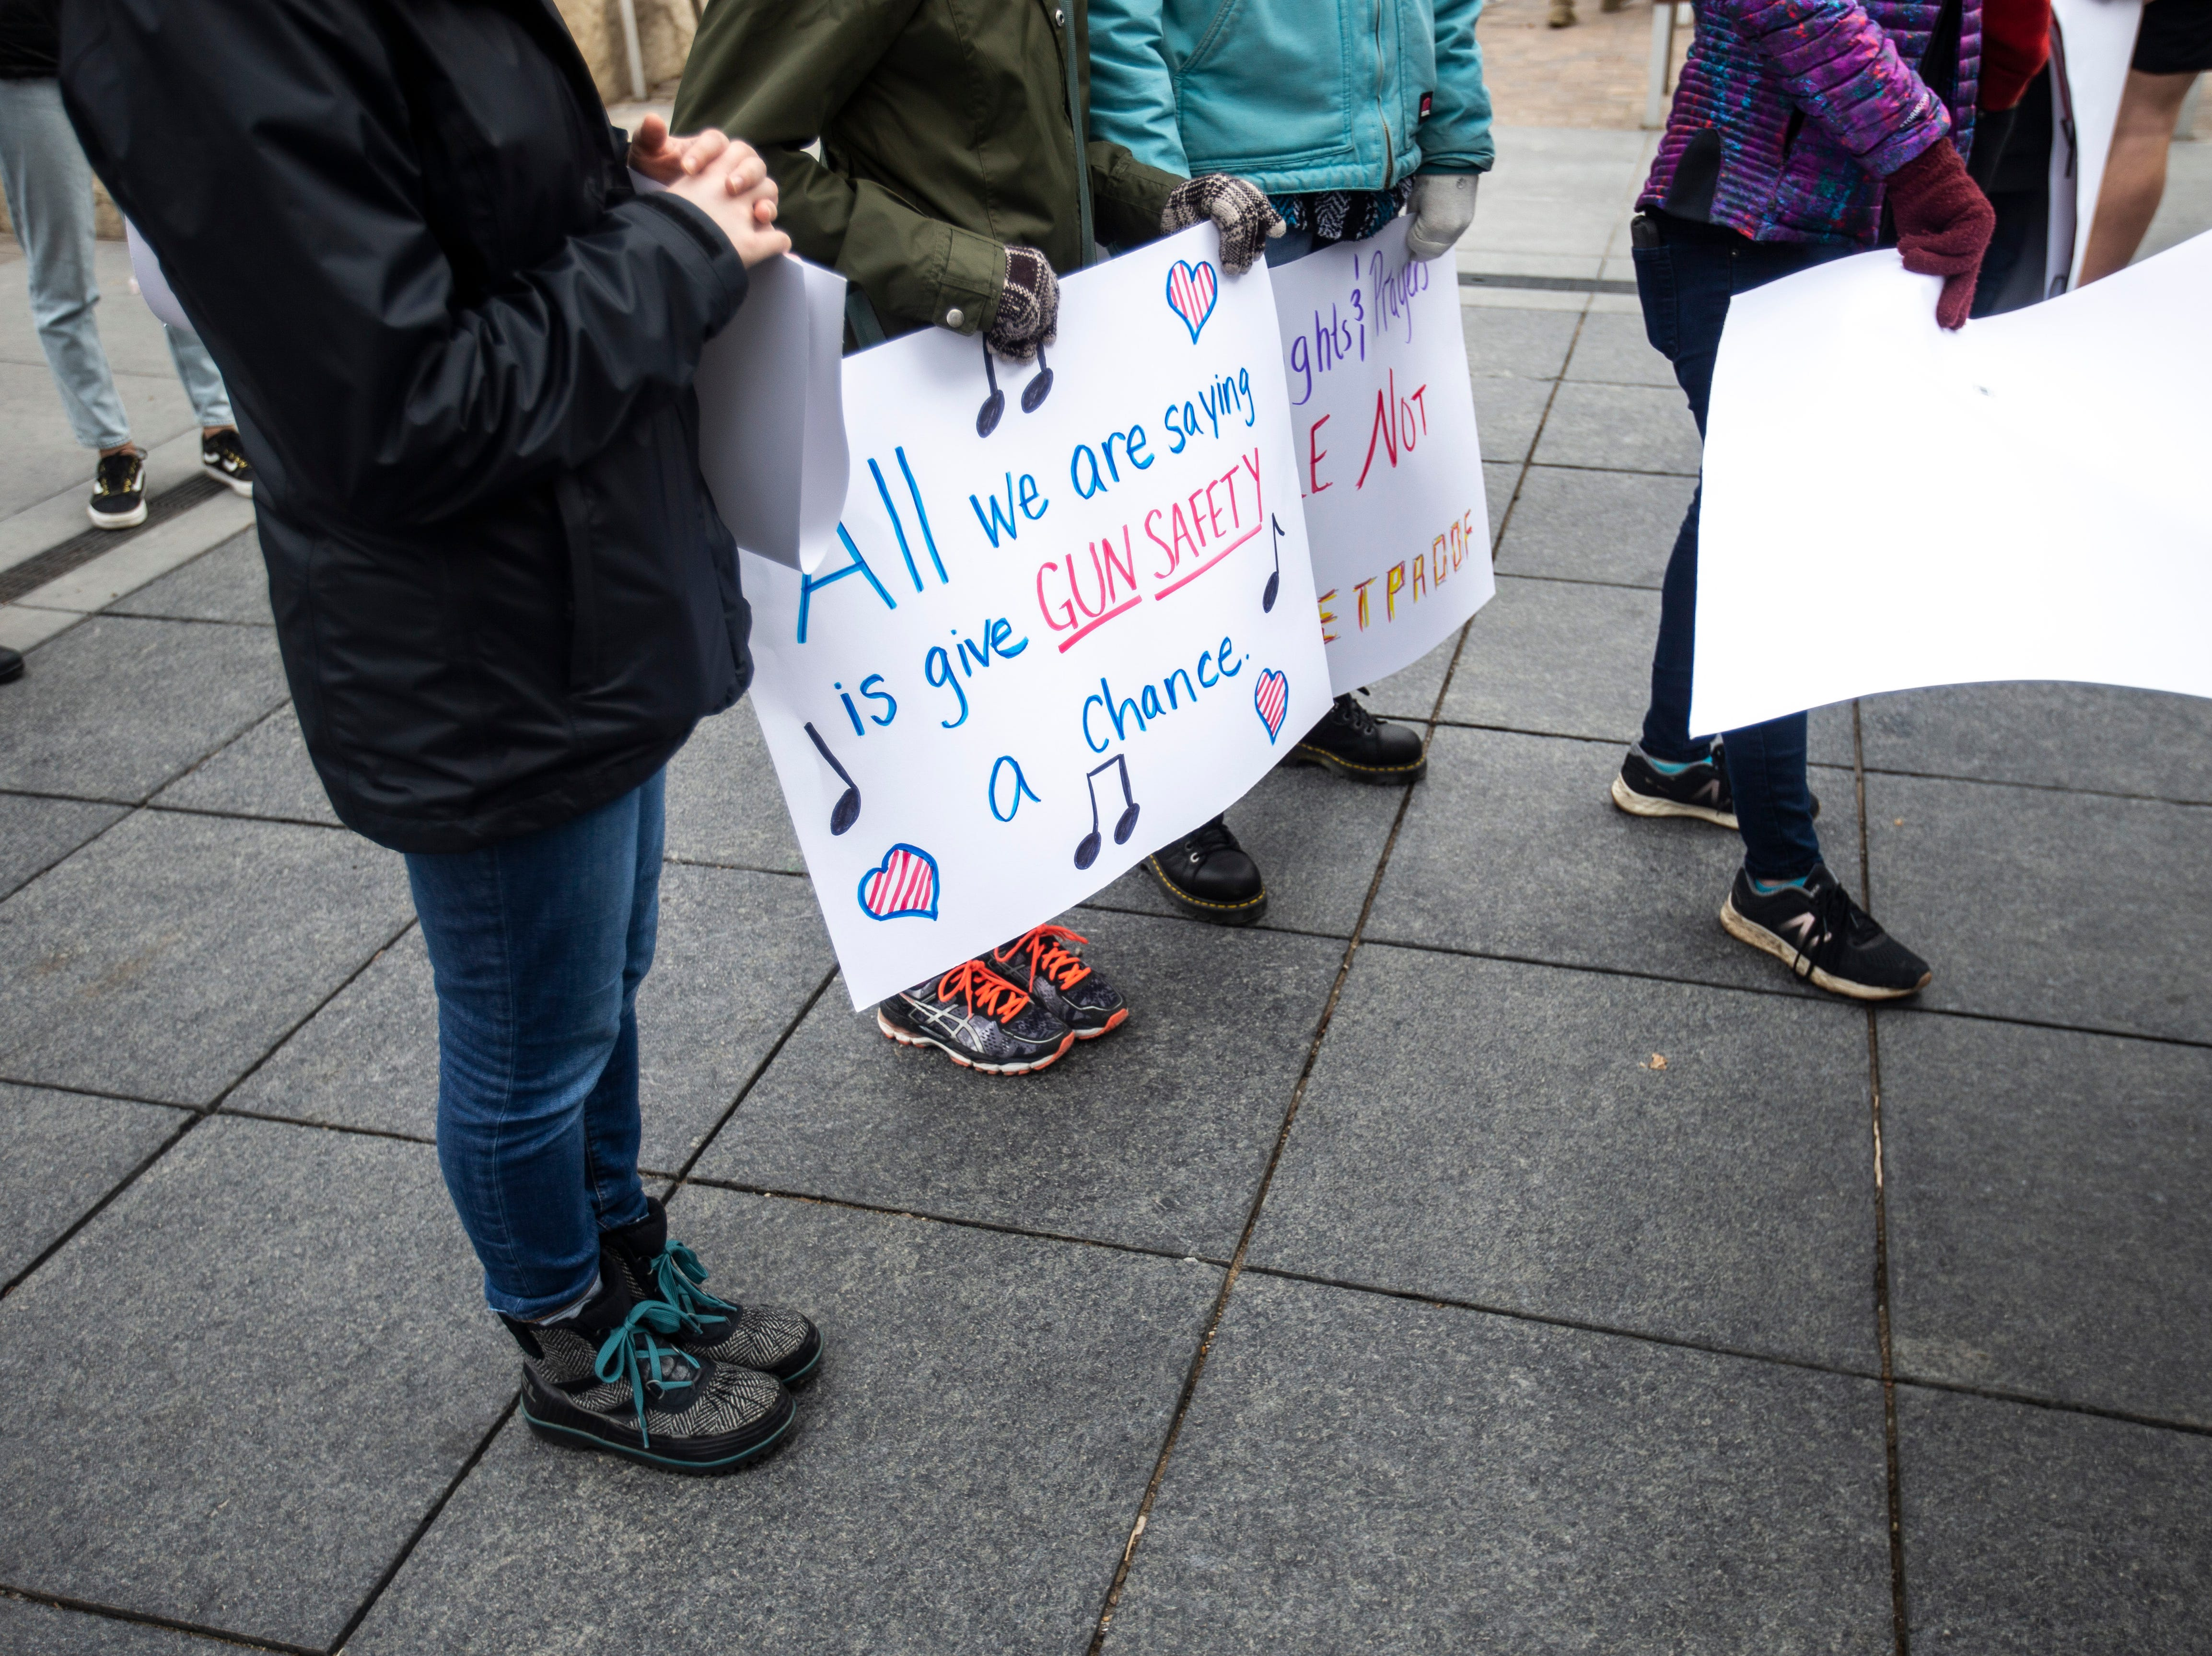 Community members gather during an event organized by the Students Against School Shootings group on Saturday, March 30, 2019, along the pedestrian mall in downtown Iowa City, Iowa.